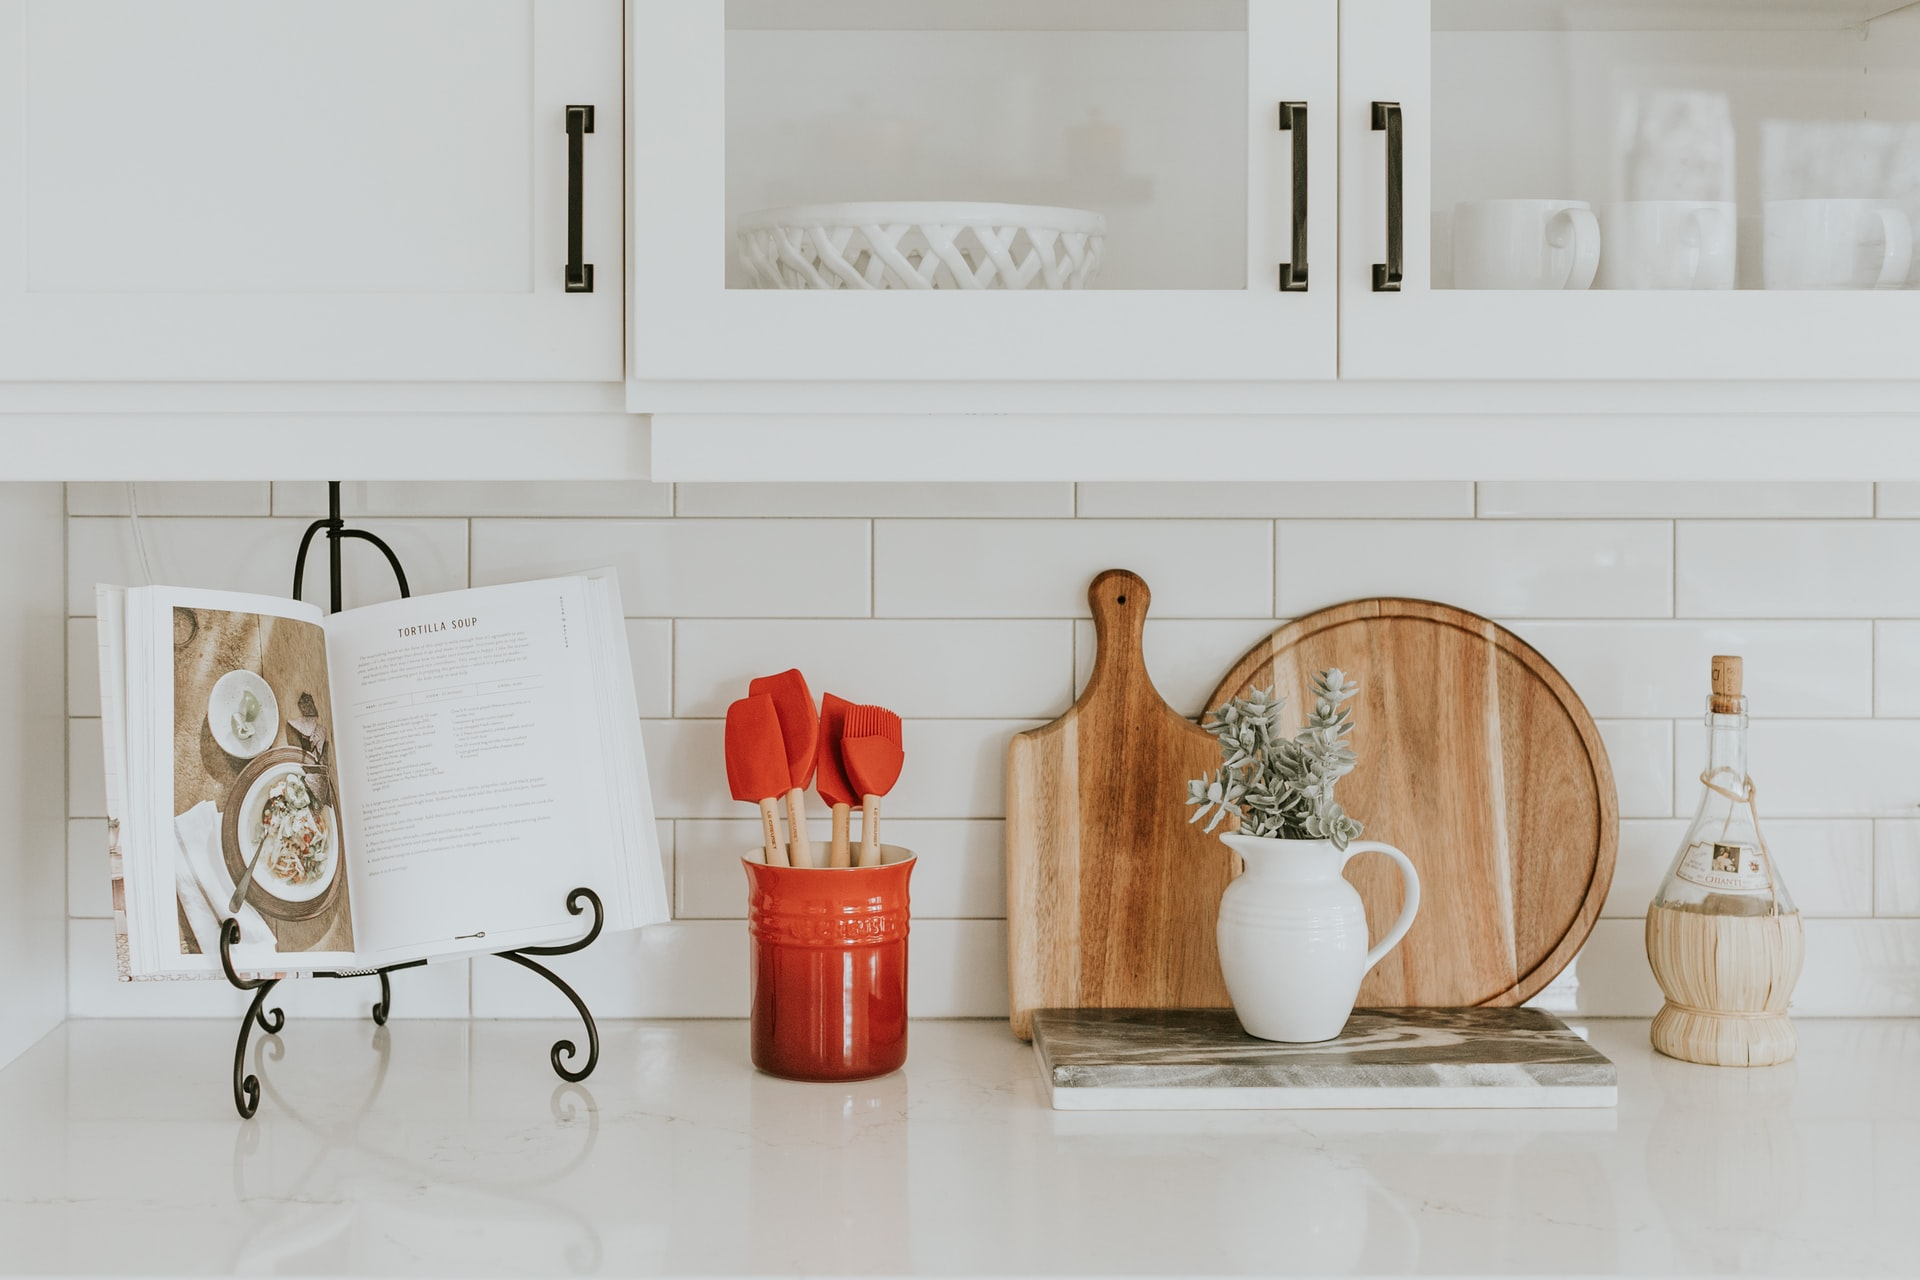 This list of zero waste products will help beginner and advance environmentalists find what they need in almost every aspect of daily life. #zerowasteliving #zerowastelifestyle #sustainableliving